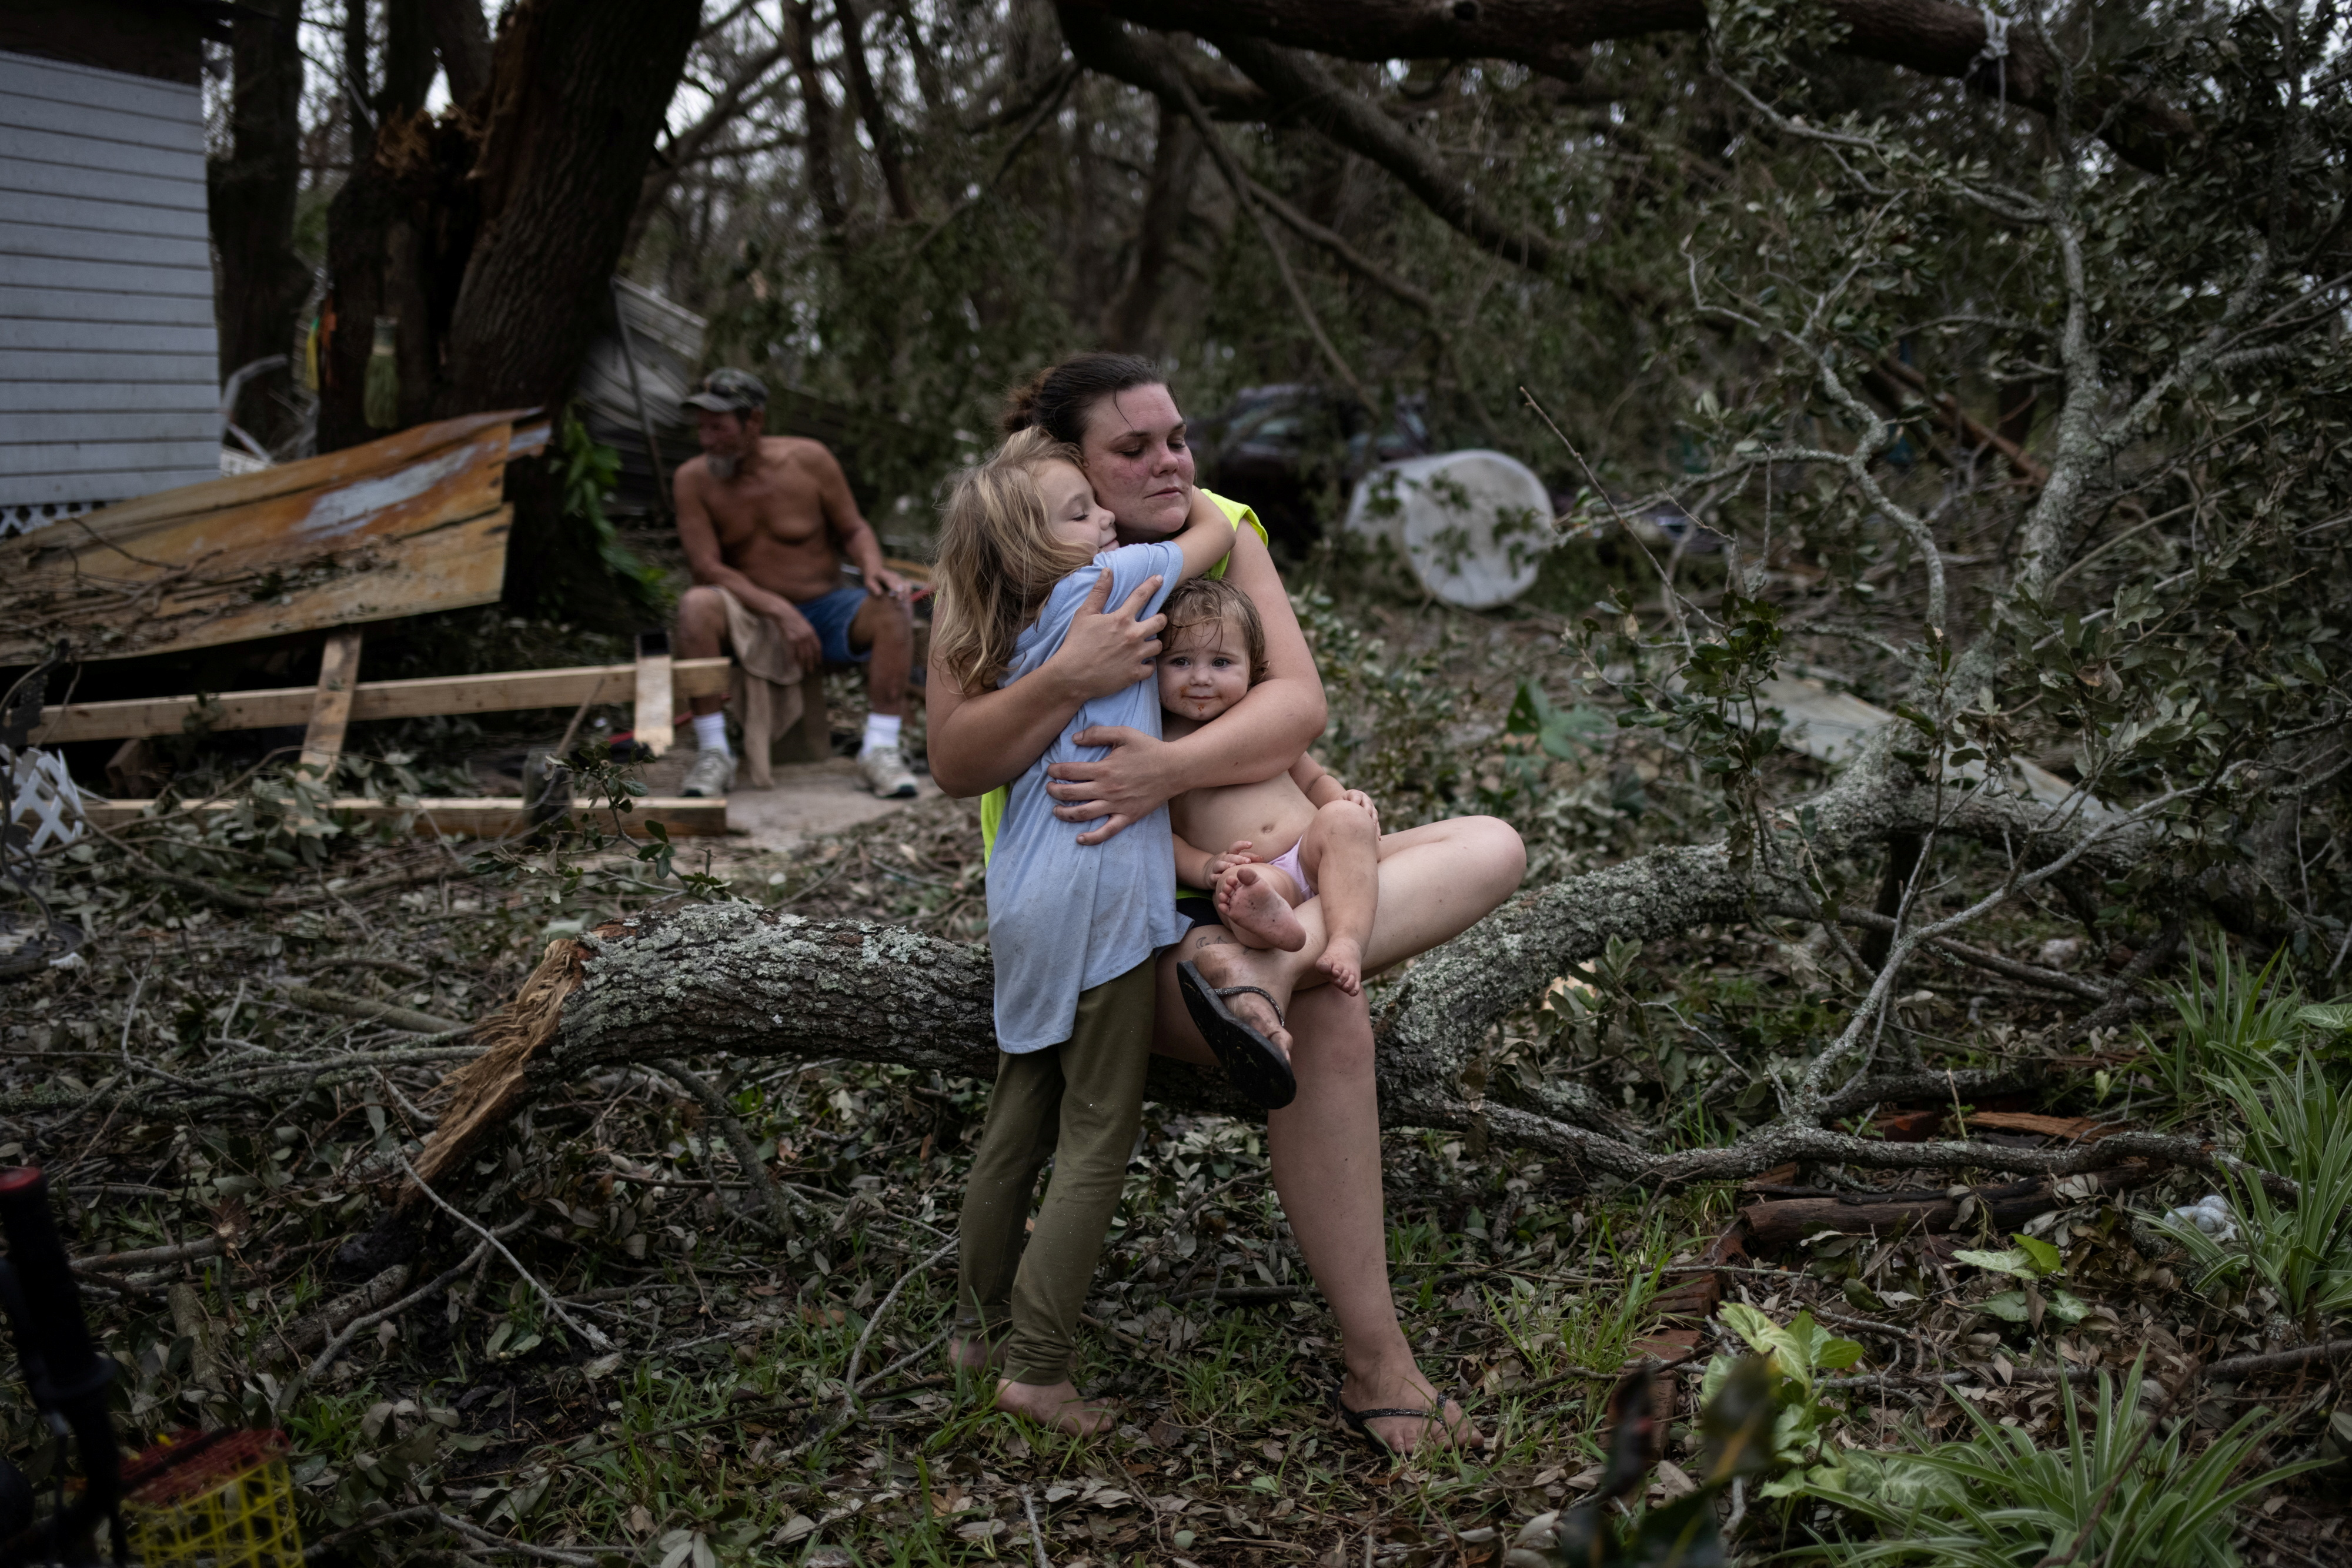 Tiffany Miller is embraced by her daughter Desilynn, 6, as she holds her one year old godchild Charleigh, after the family returned to their destroyed home in the aftermath of Hurricane Ida in Golden Meadow, Louisiana, U.S., September 1, 2021. REUTERS/Adrees Latif